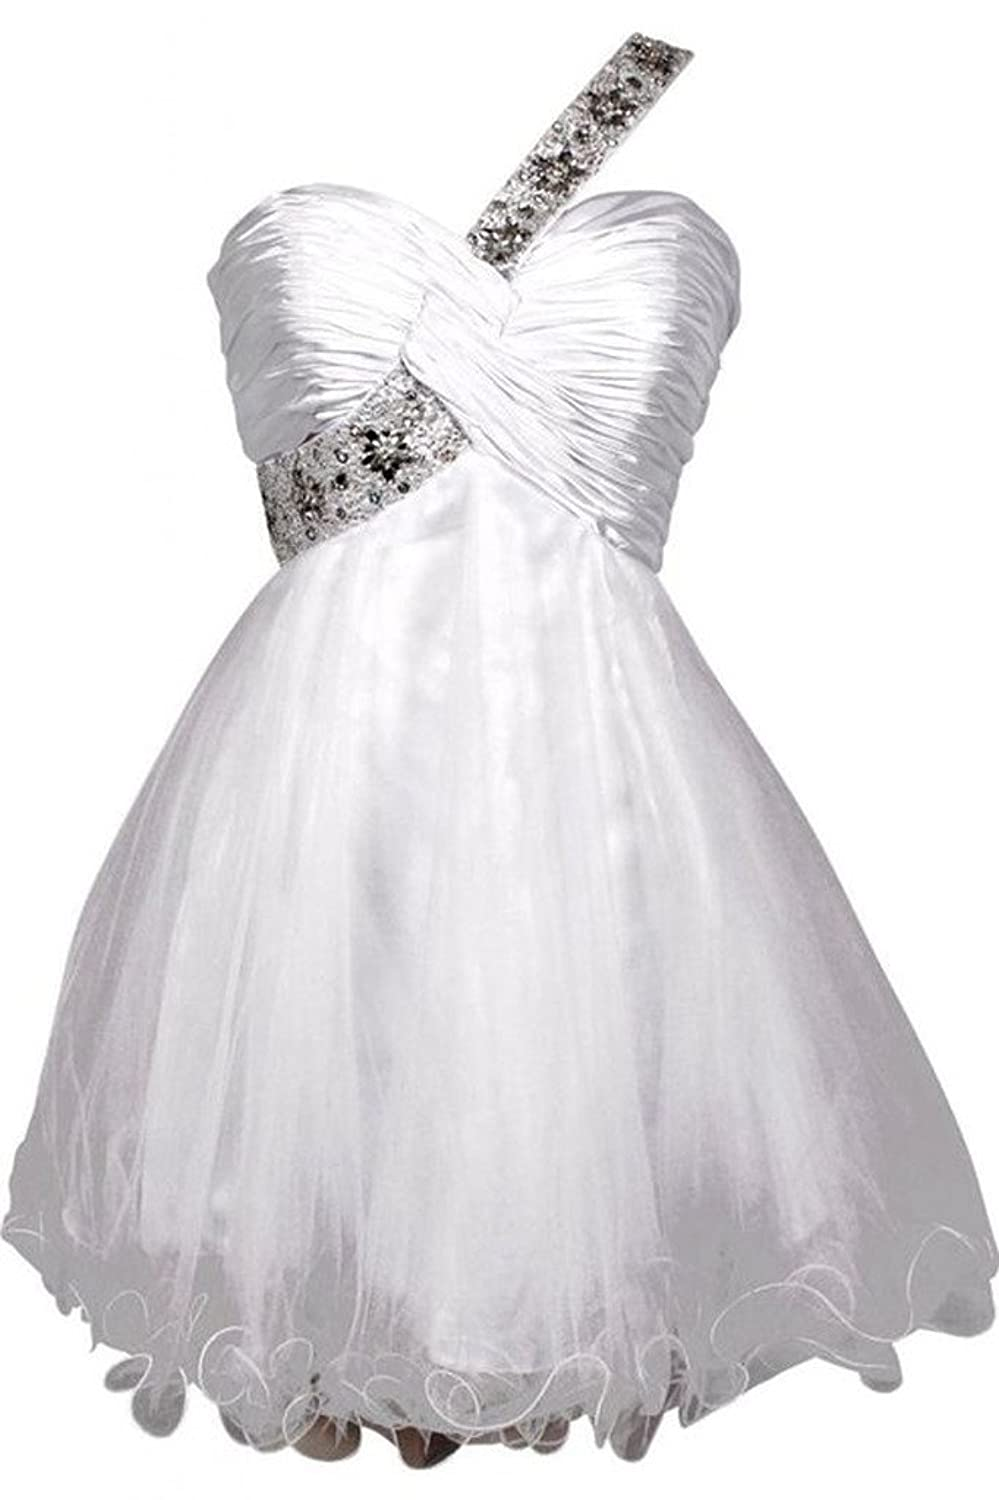 Snowskite Girl's One shoulder Lovely Princess Homecoming Dance Party Prom Dress